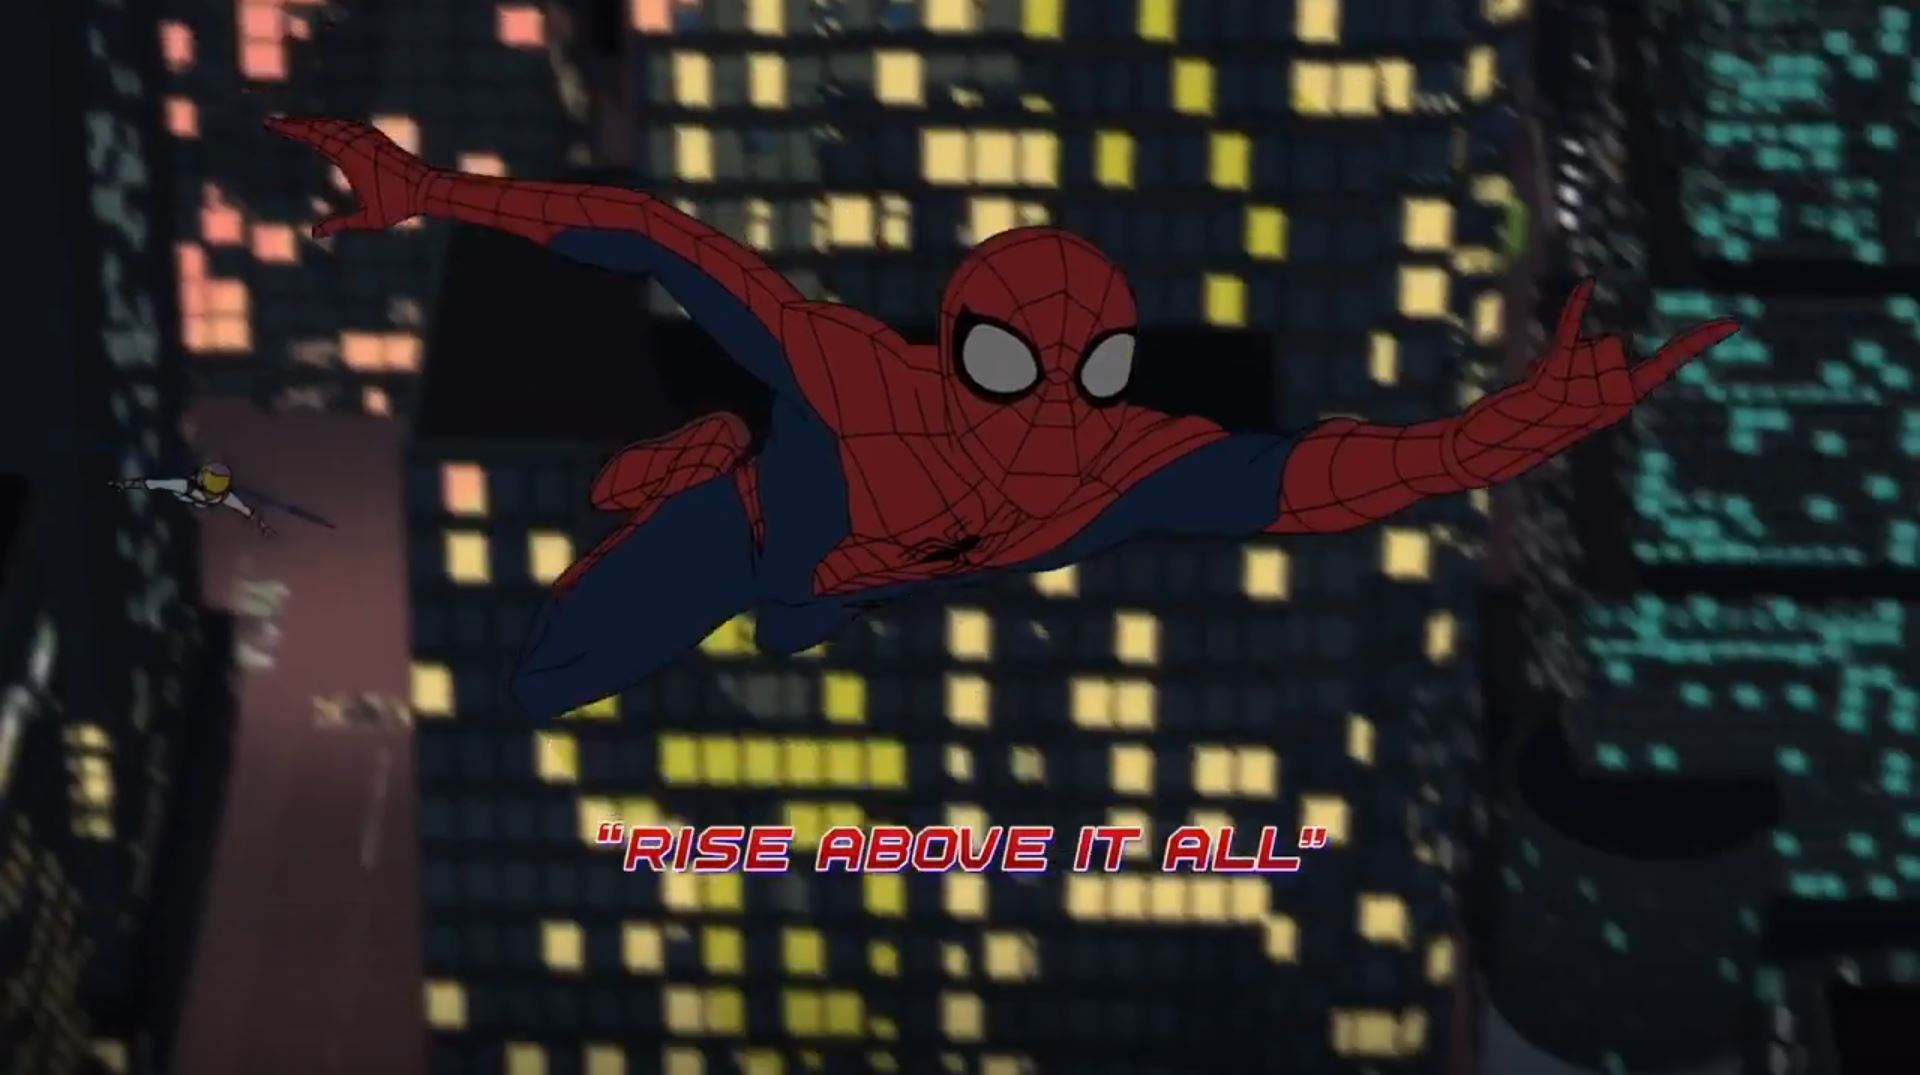 Marvel's Spider-Man (animated series) Season 2 4